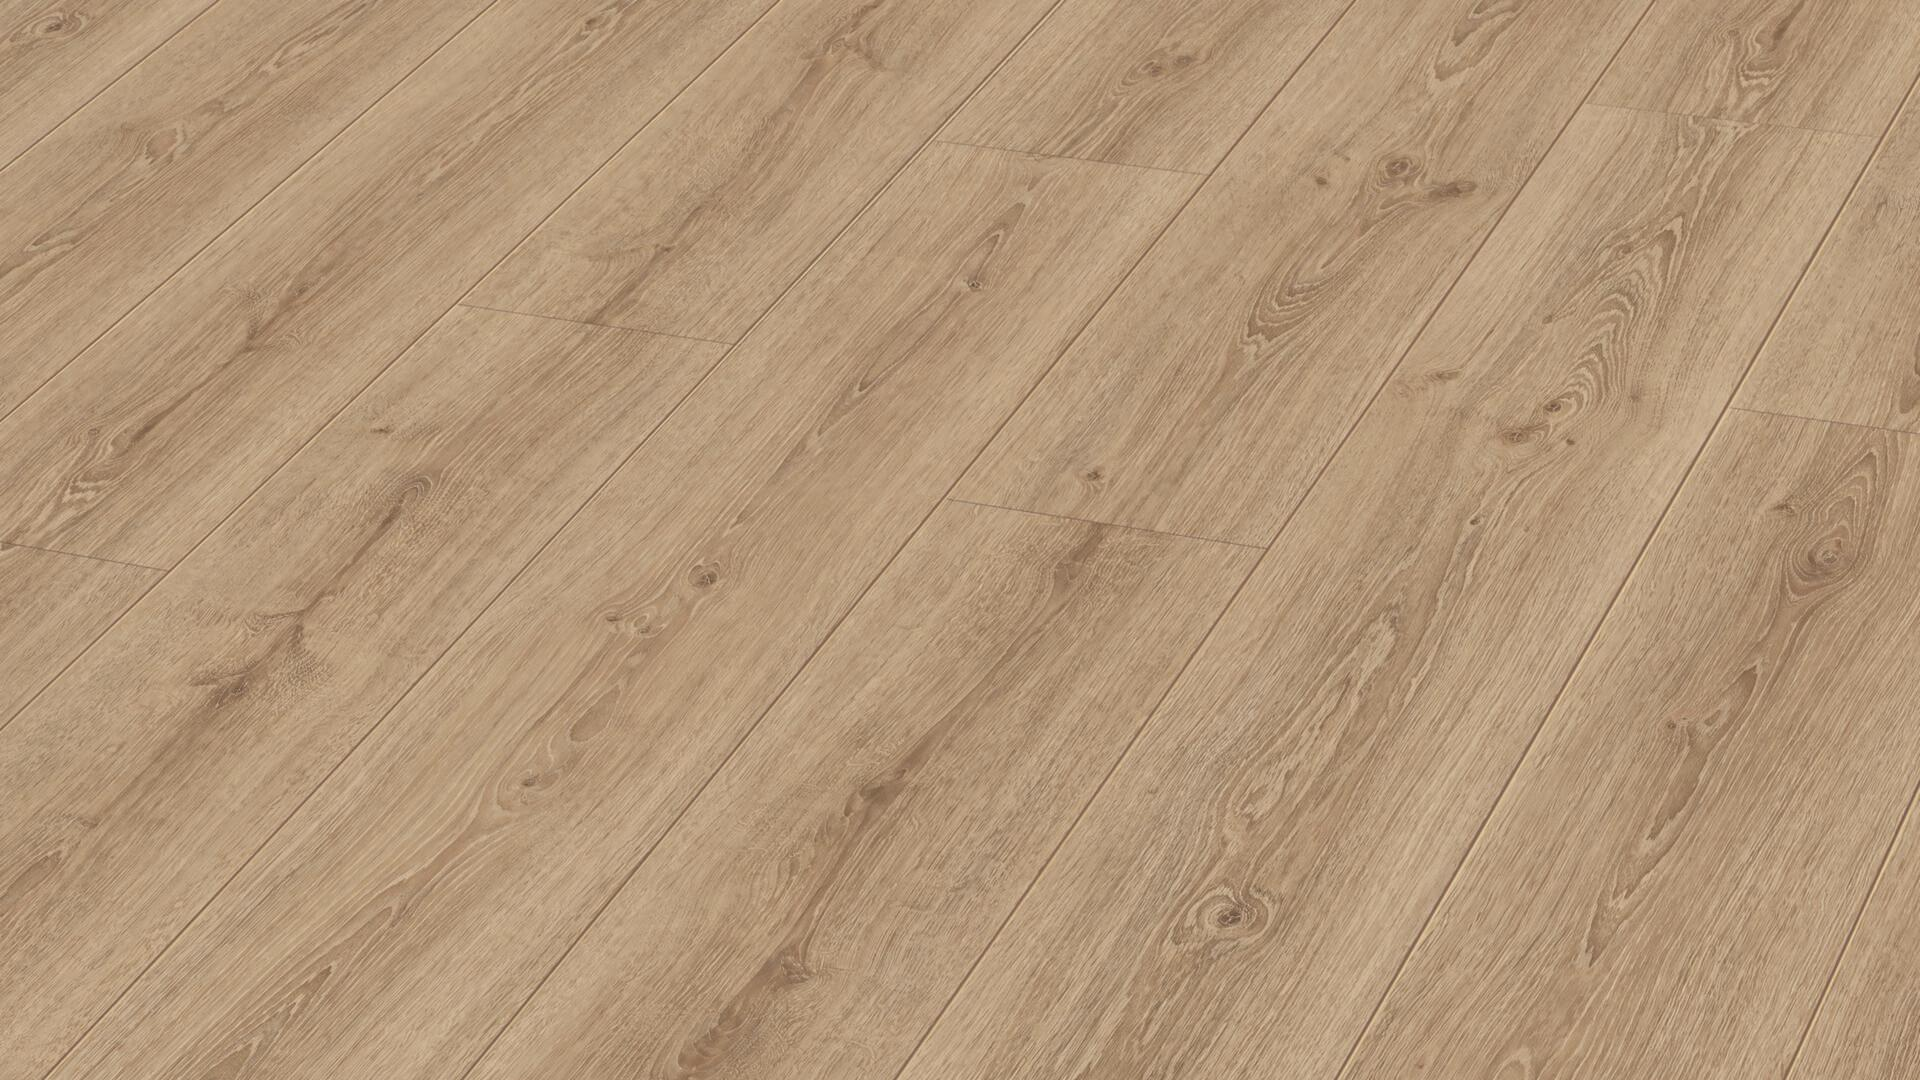 Design flooring MeisterDesign. comfort DD 600 S Natural English oak 6983